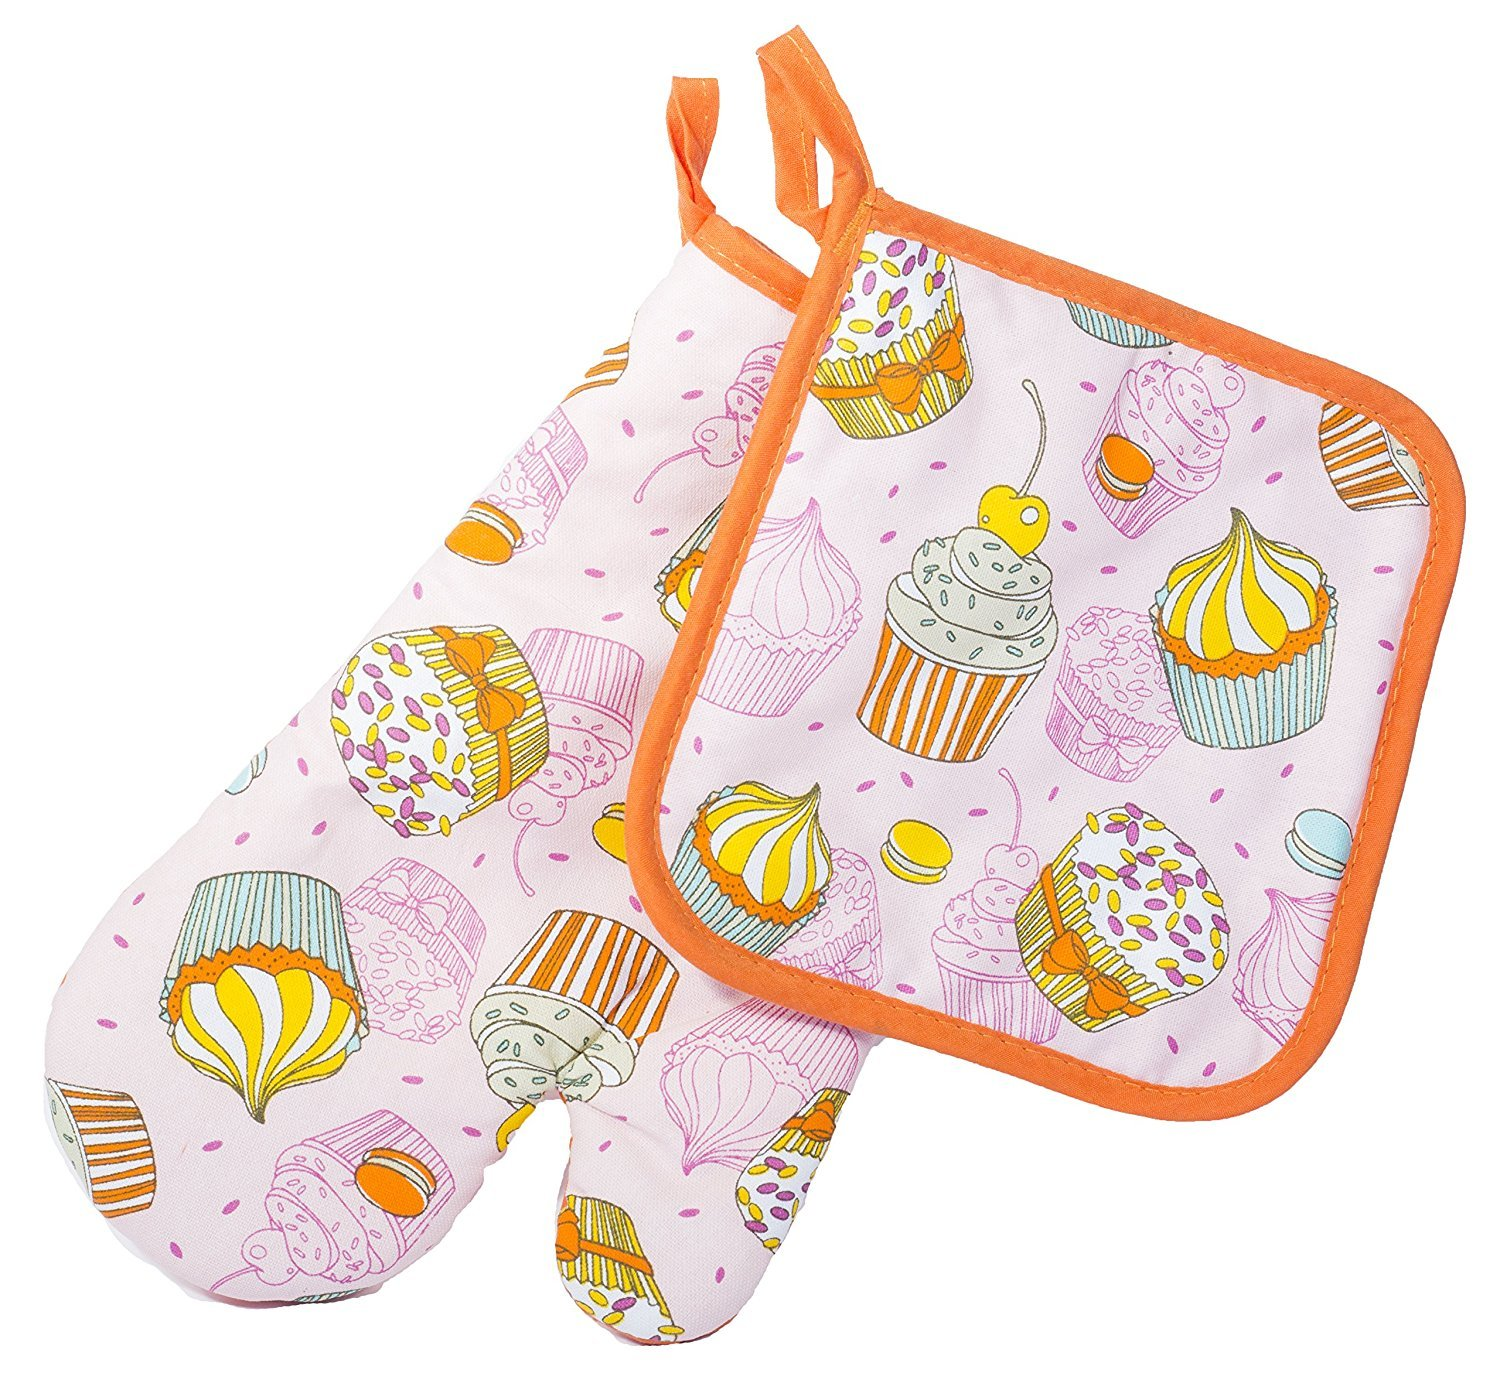 Cupcakes Thumb Mitt Кitchen Wears Print Pot Holder Cupcakes and Designs Potholders Set